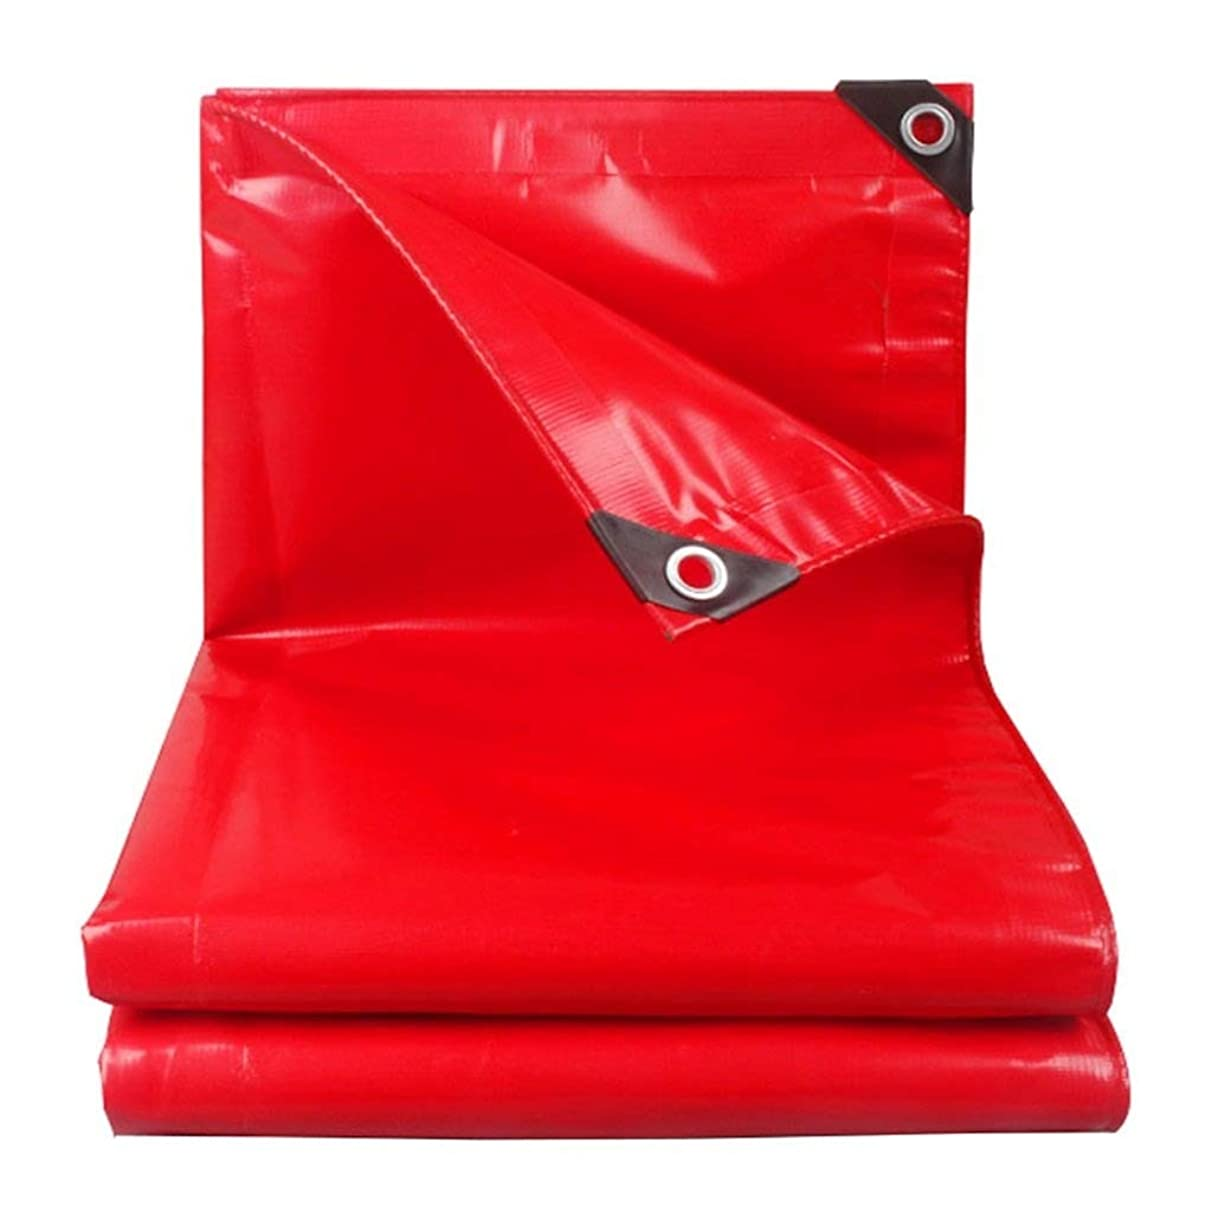 Tarp 100% Waterproof Tarpaulin Heavy Duty Tarp Ground Sheet Cover Car Boat Roof Rain Cover Camping Trailer Tent Red Pool Cover (Size : 4mx5m)